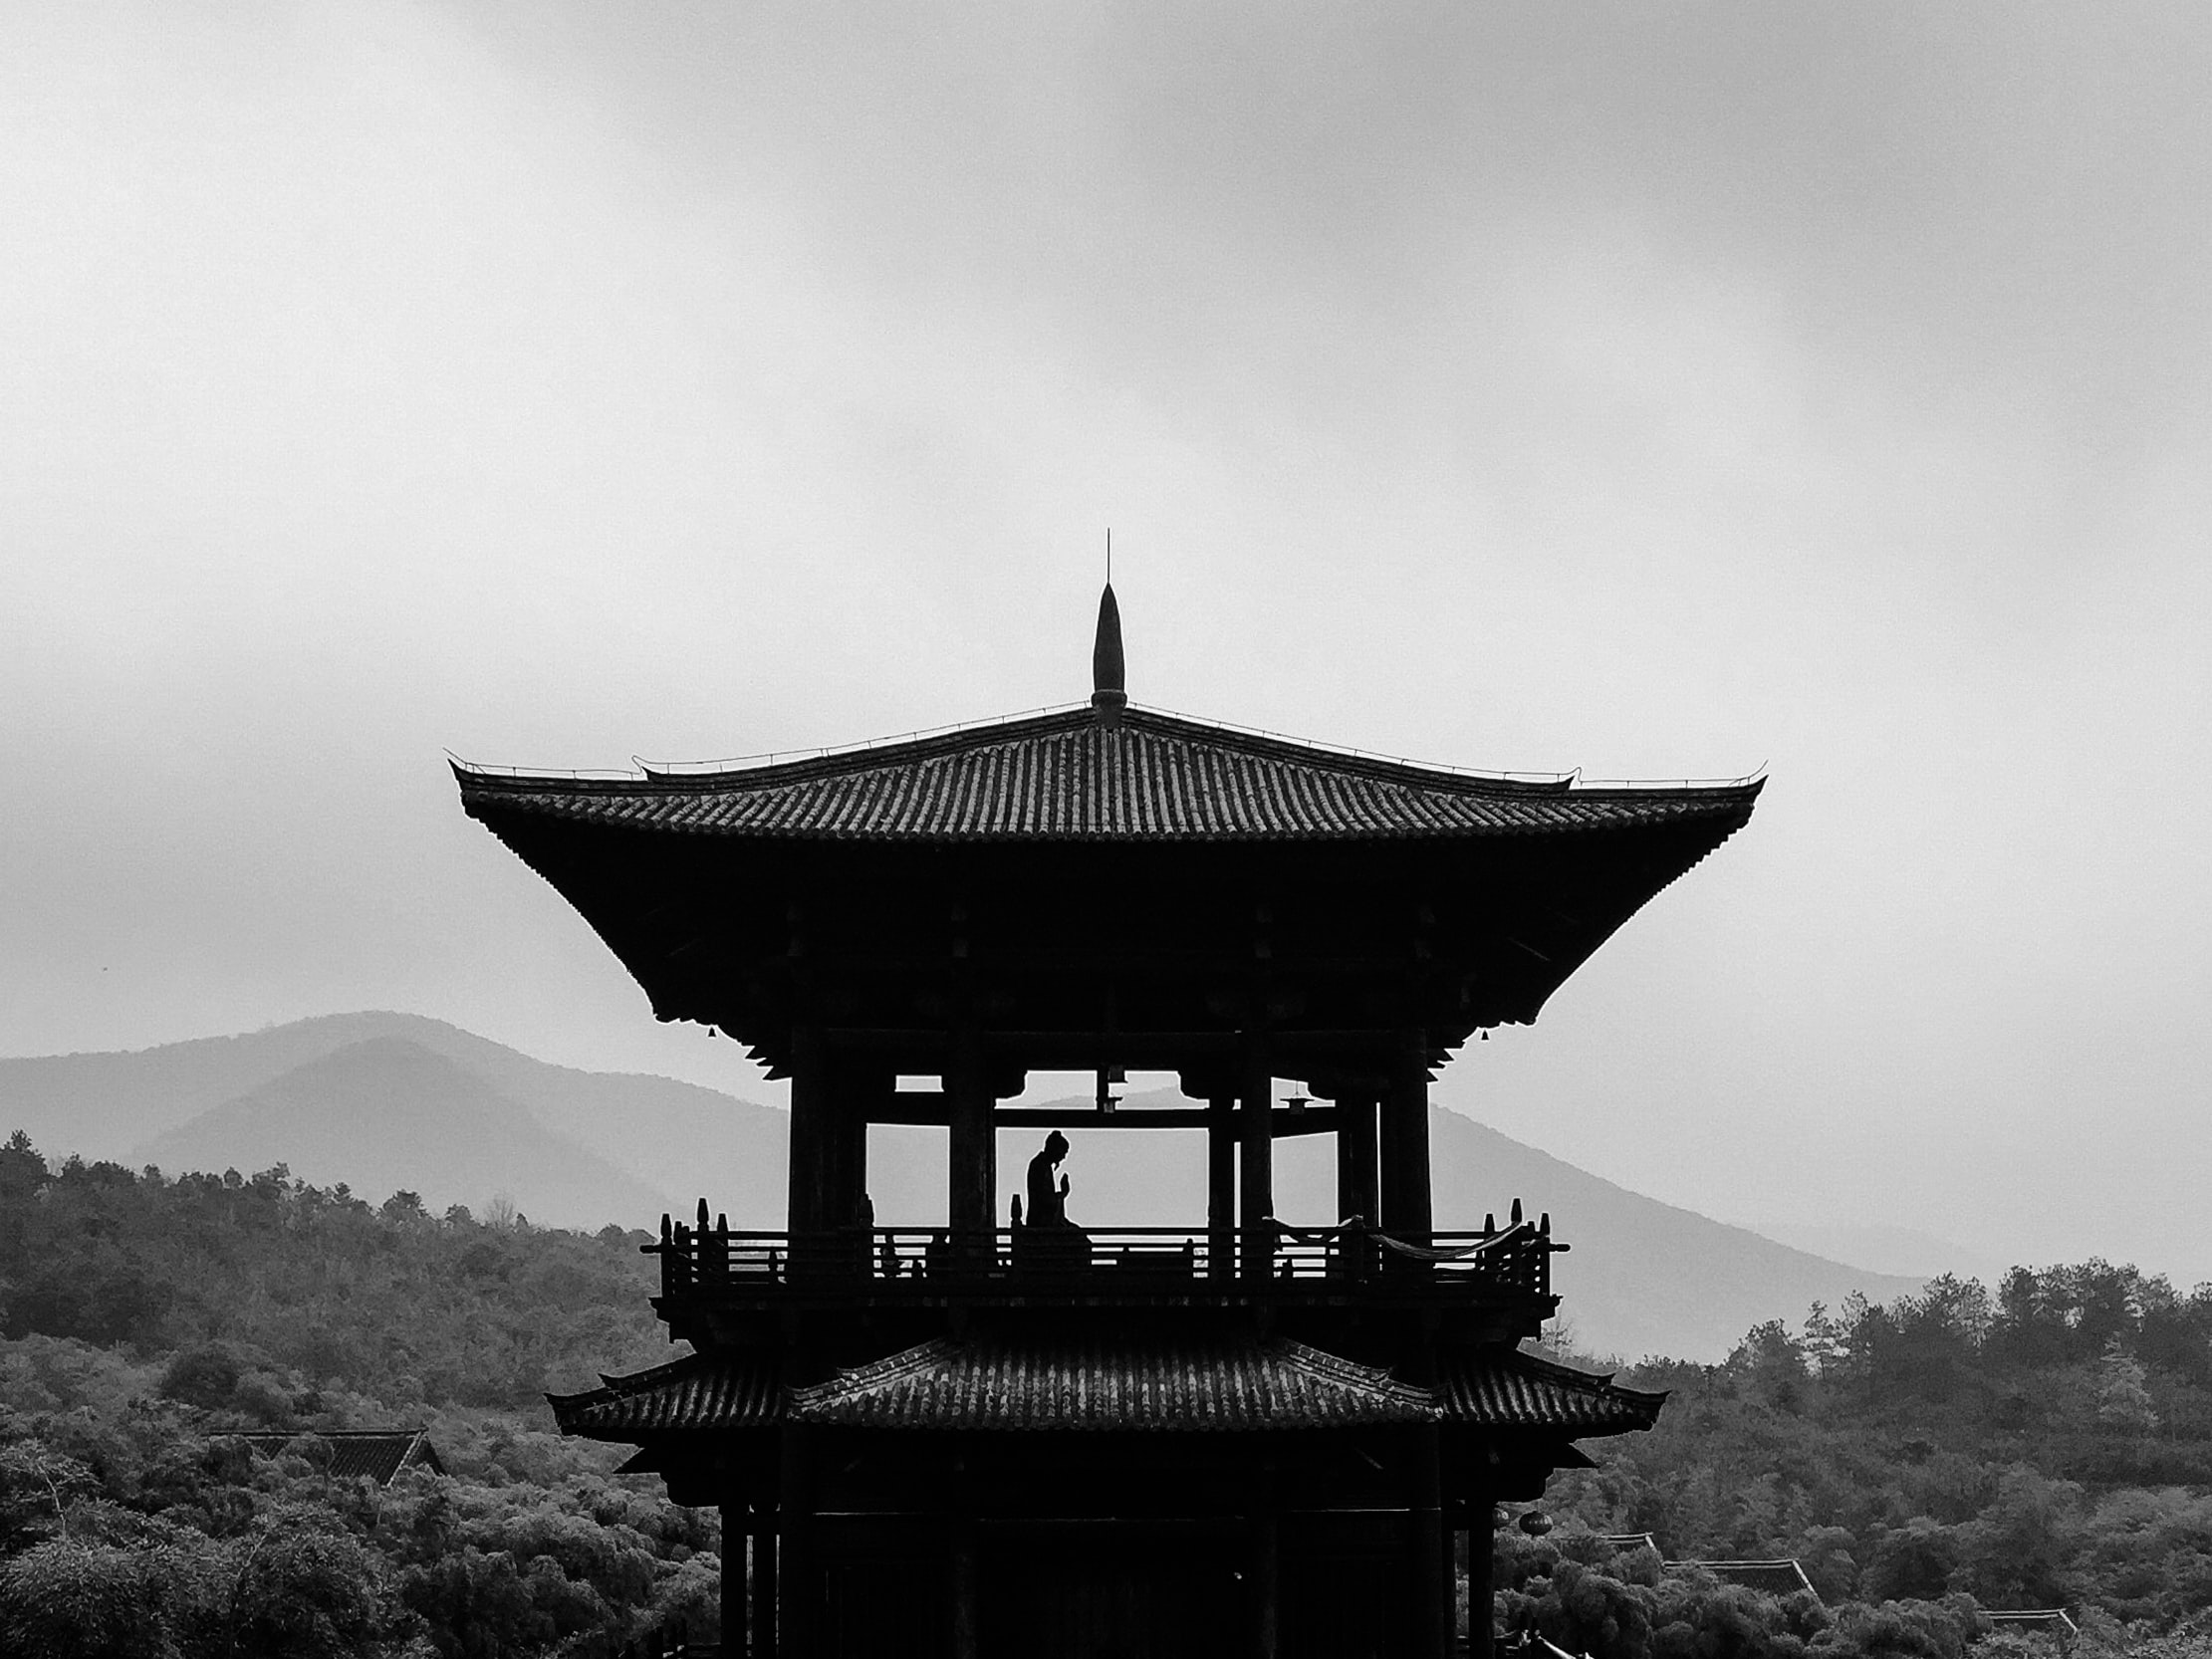 grayscale photography of person on pagoda